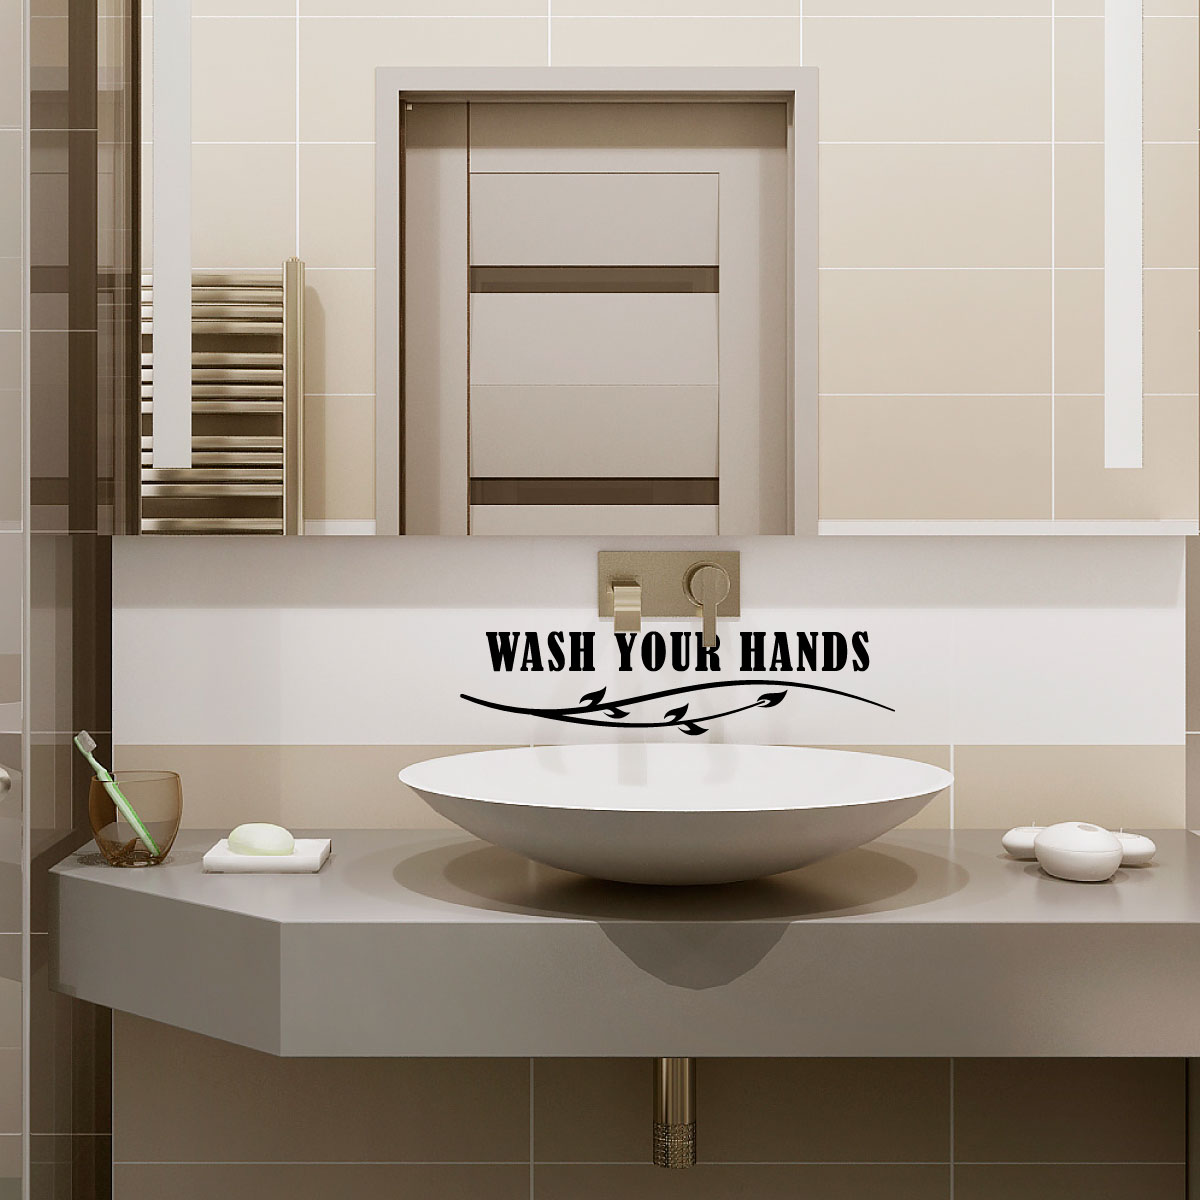 sticker salle de bain citation wash your hands stickers toilettes murs wc ambiance sticker. Black Bedroom Furniture Sets. Home Design Ideas